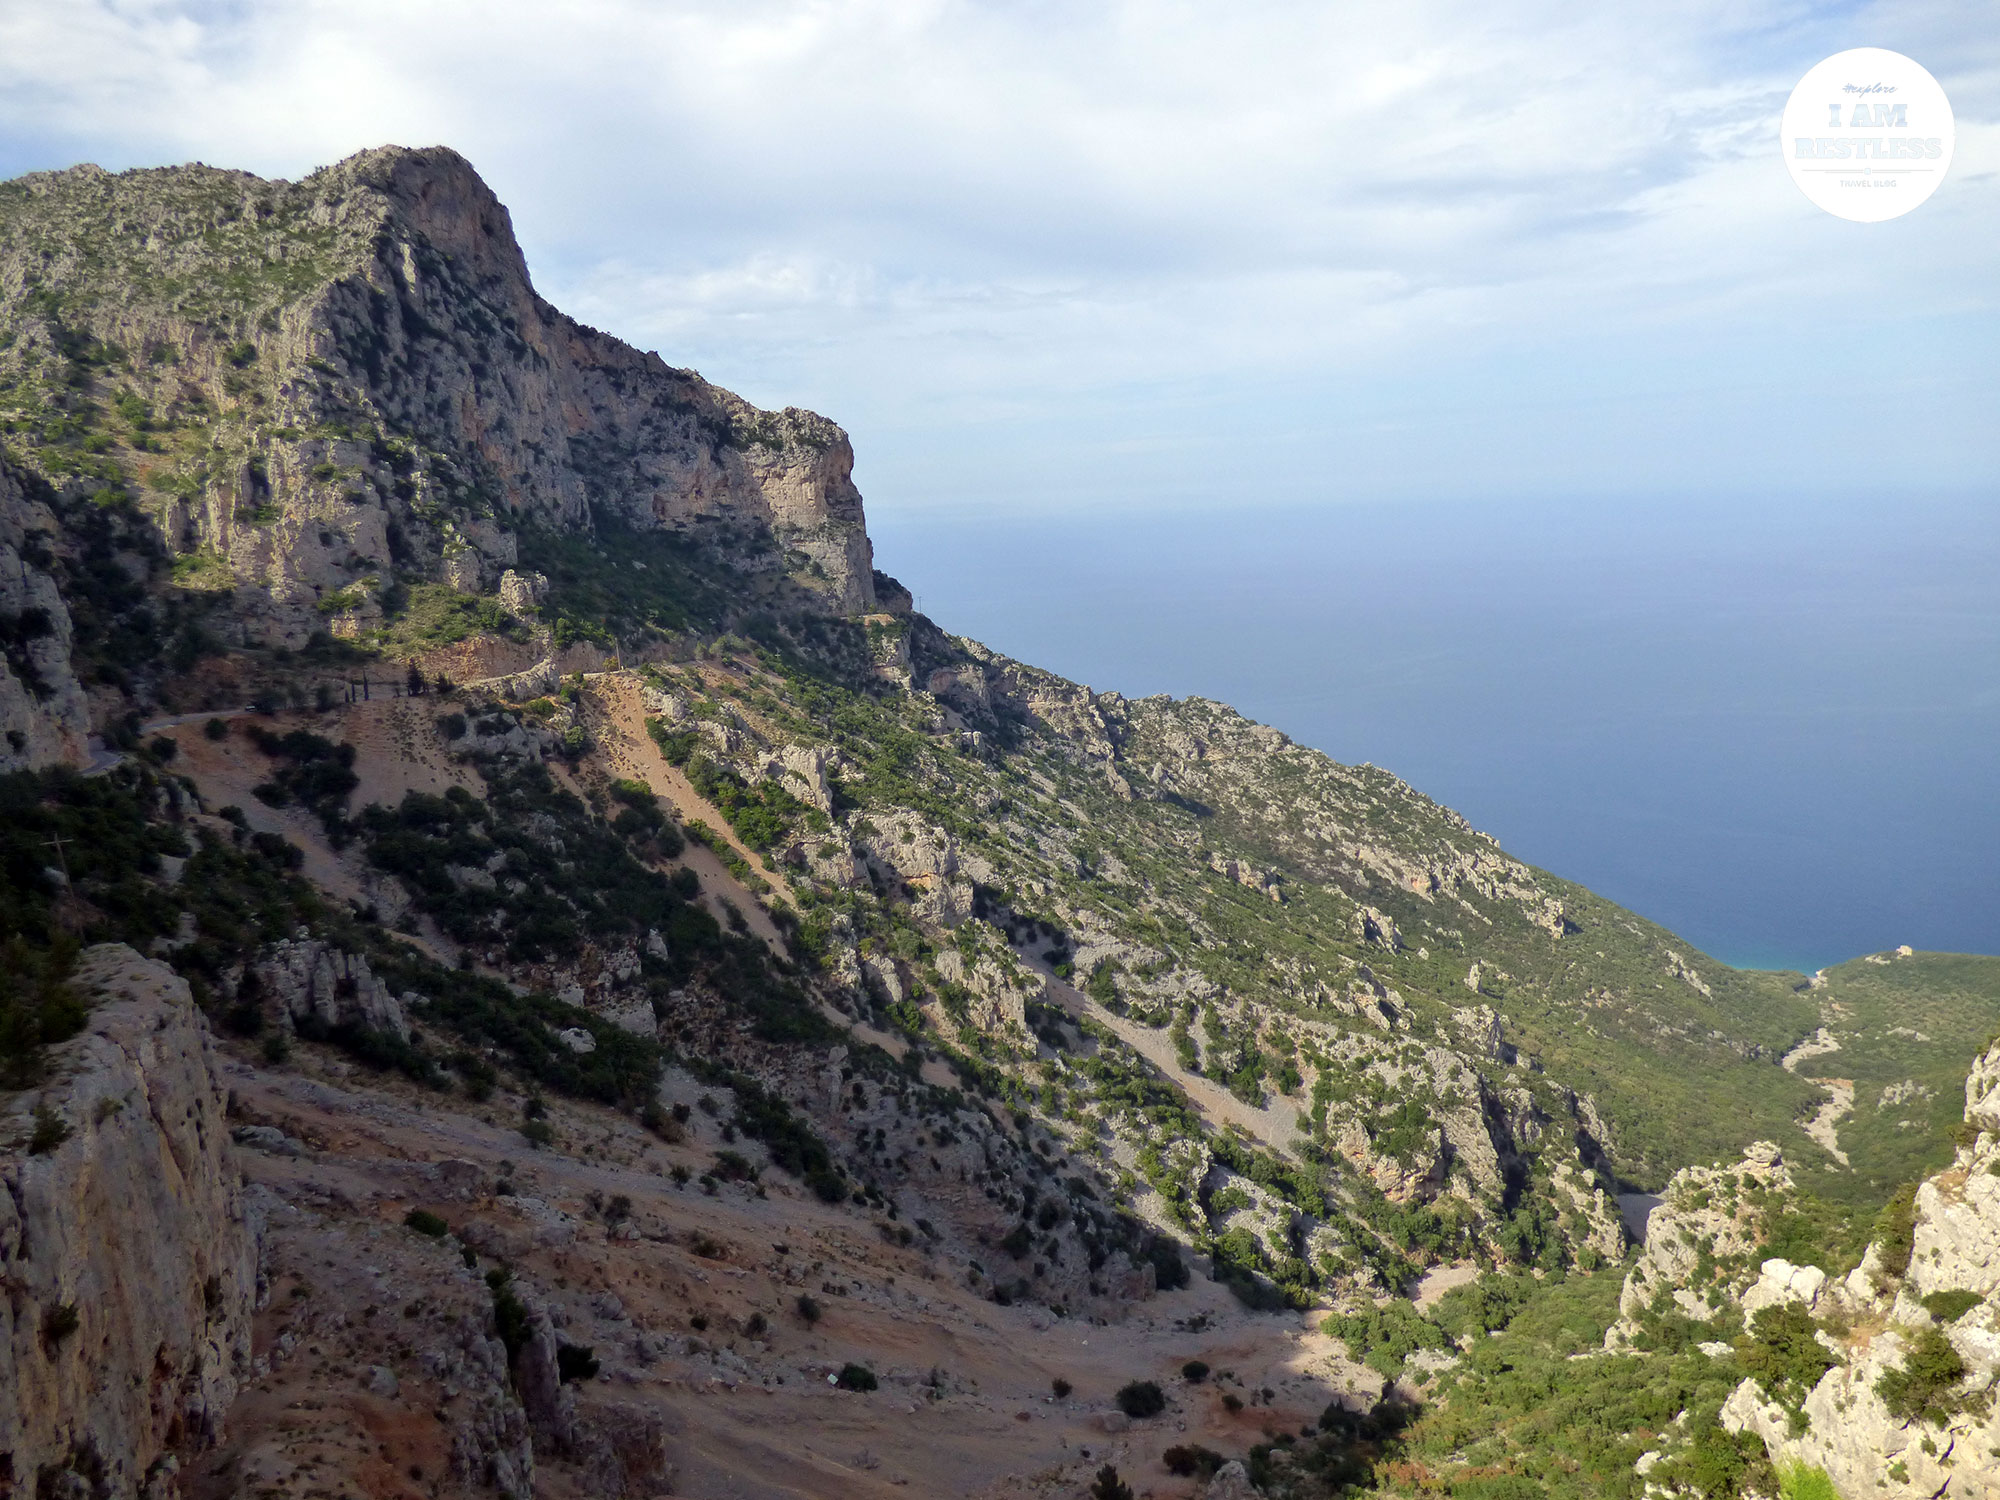 What-to-See-in-Greece-The-Scenic-Lookout-at-BellEkklisia-Agia-Paraskevi-Εκκλησία-Αγία-Παρασκευή---3.jpg